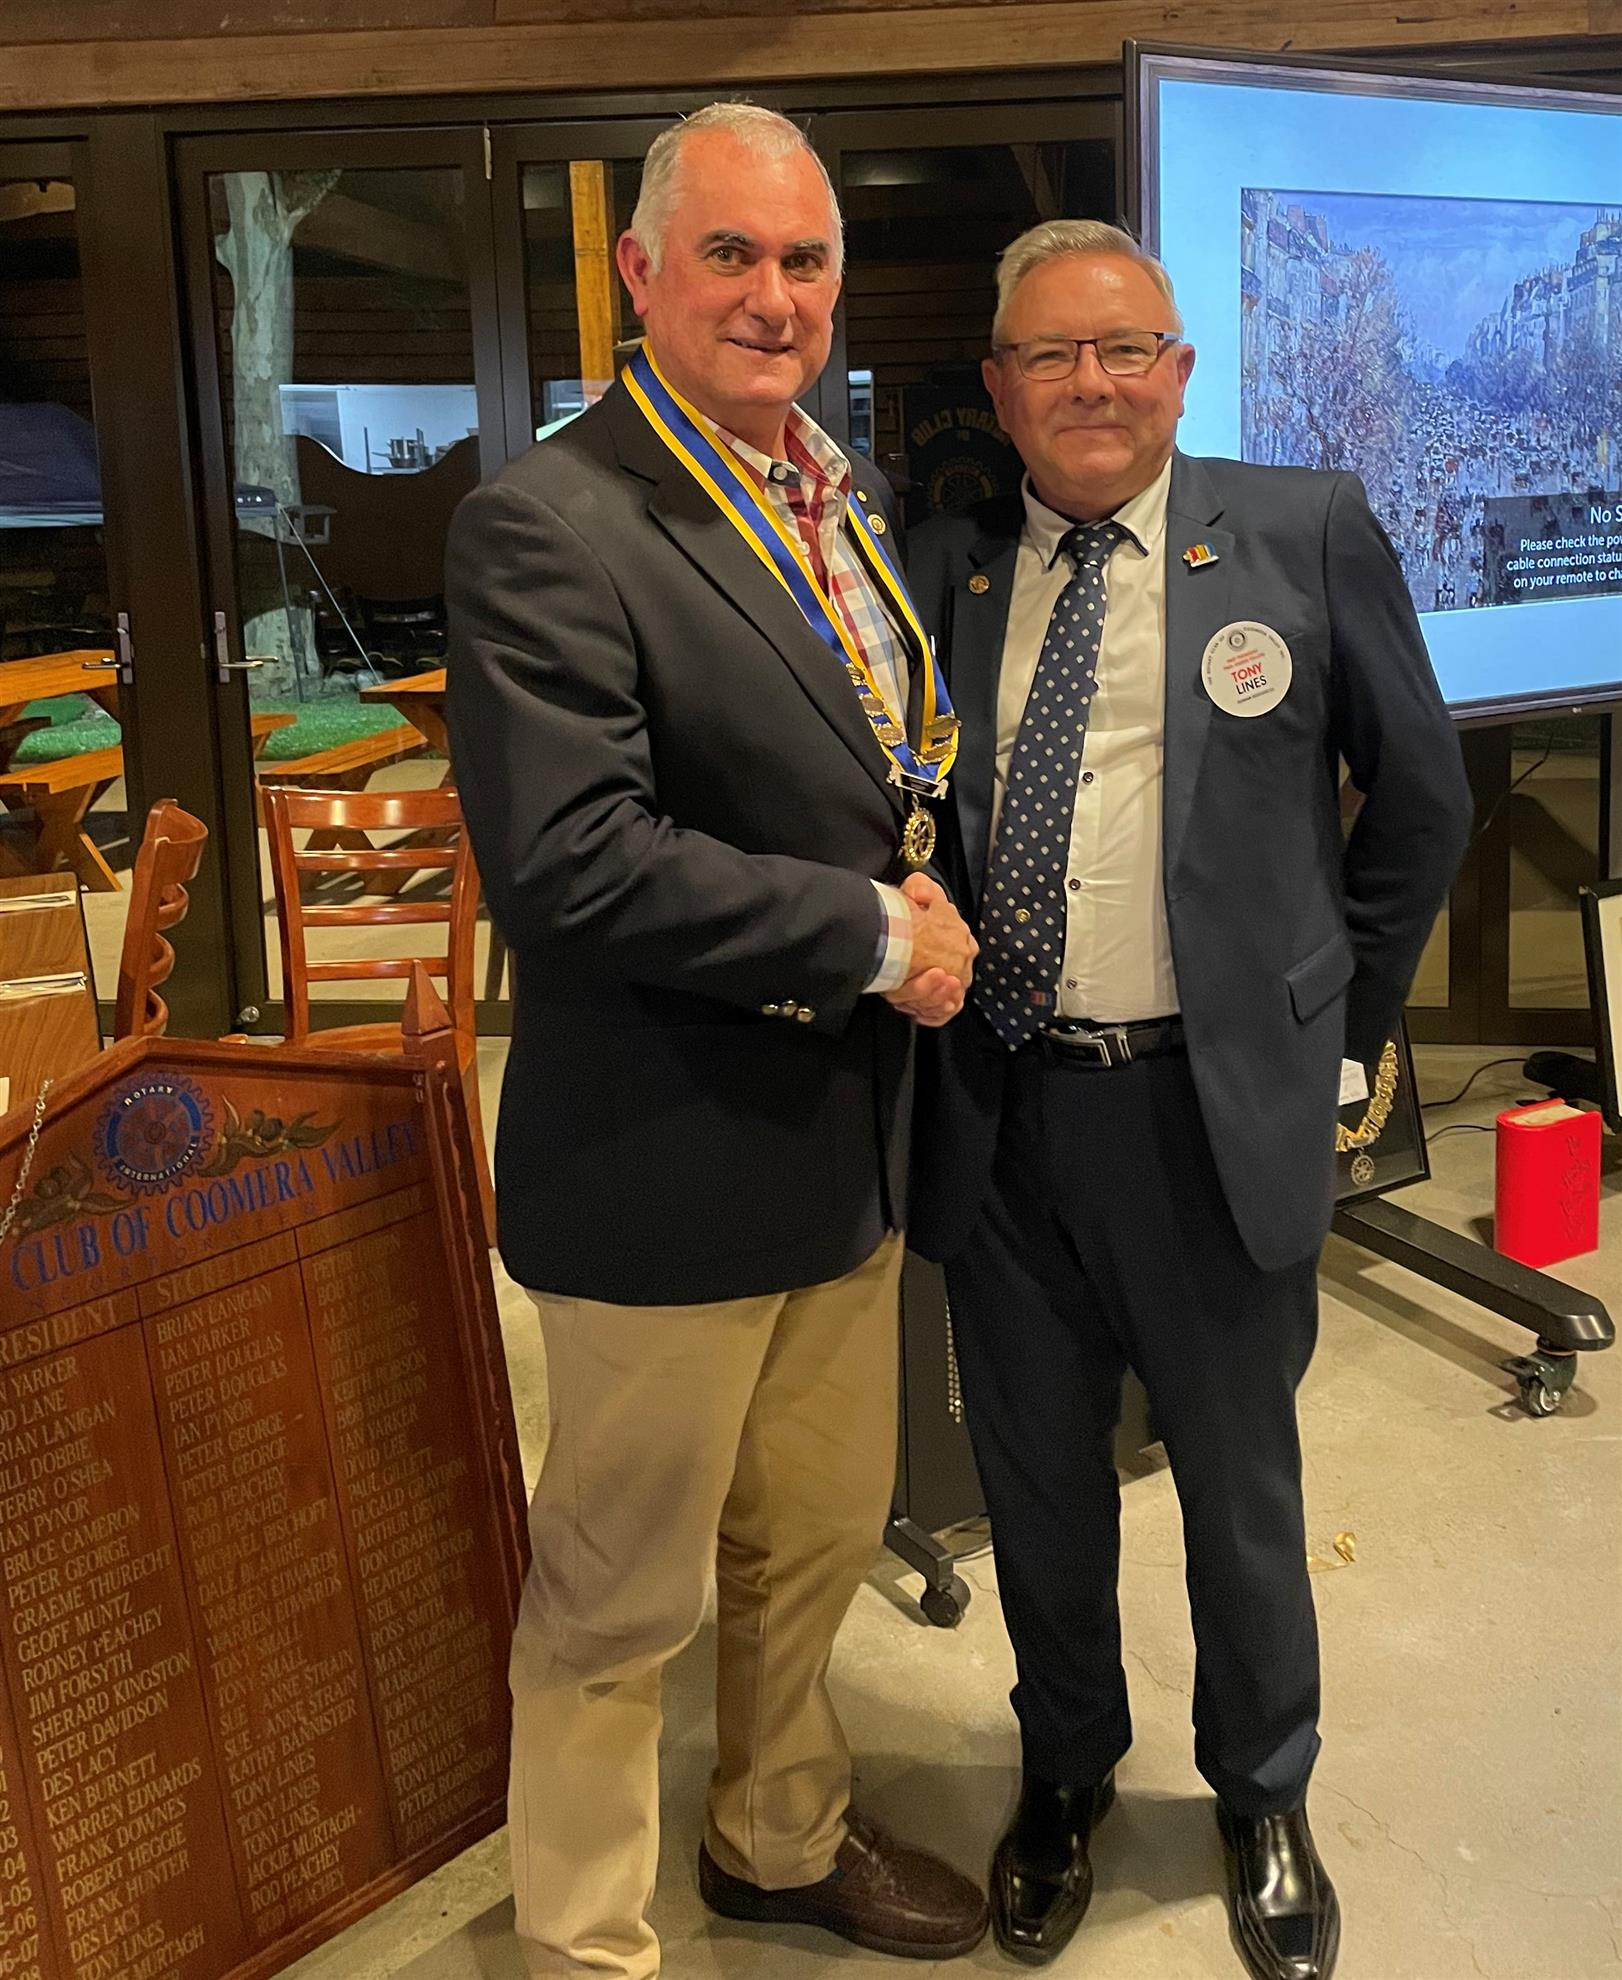 Tony Lines passing the presidency to Des Lacy